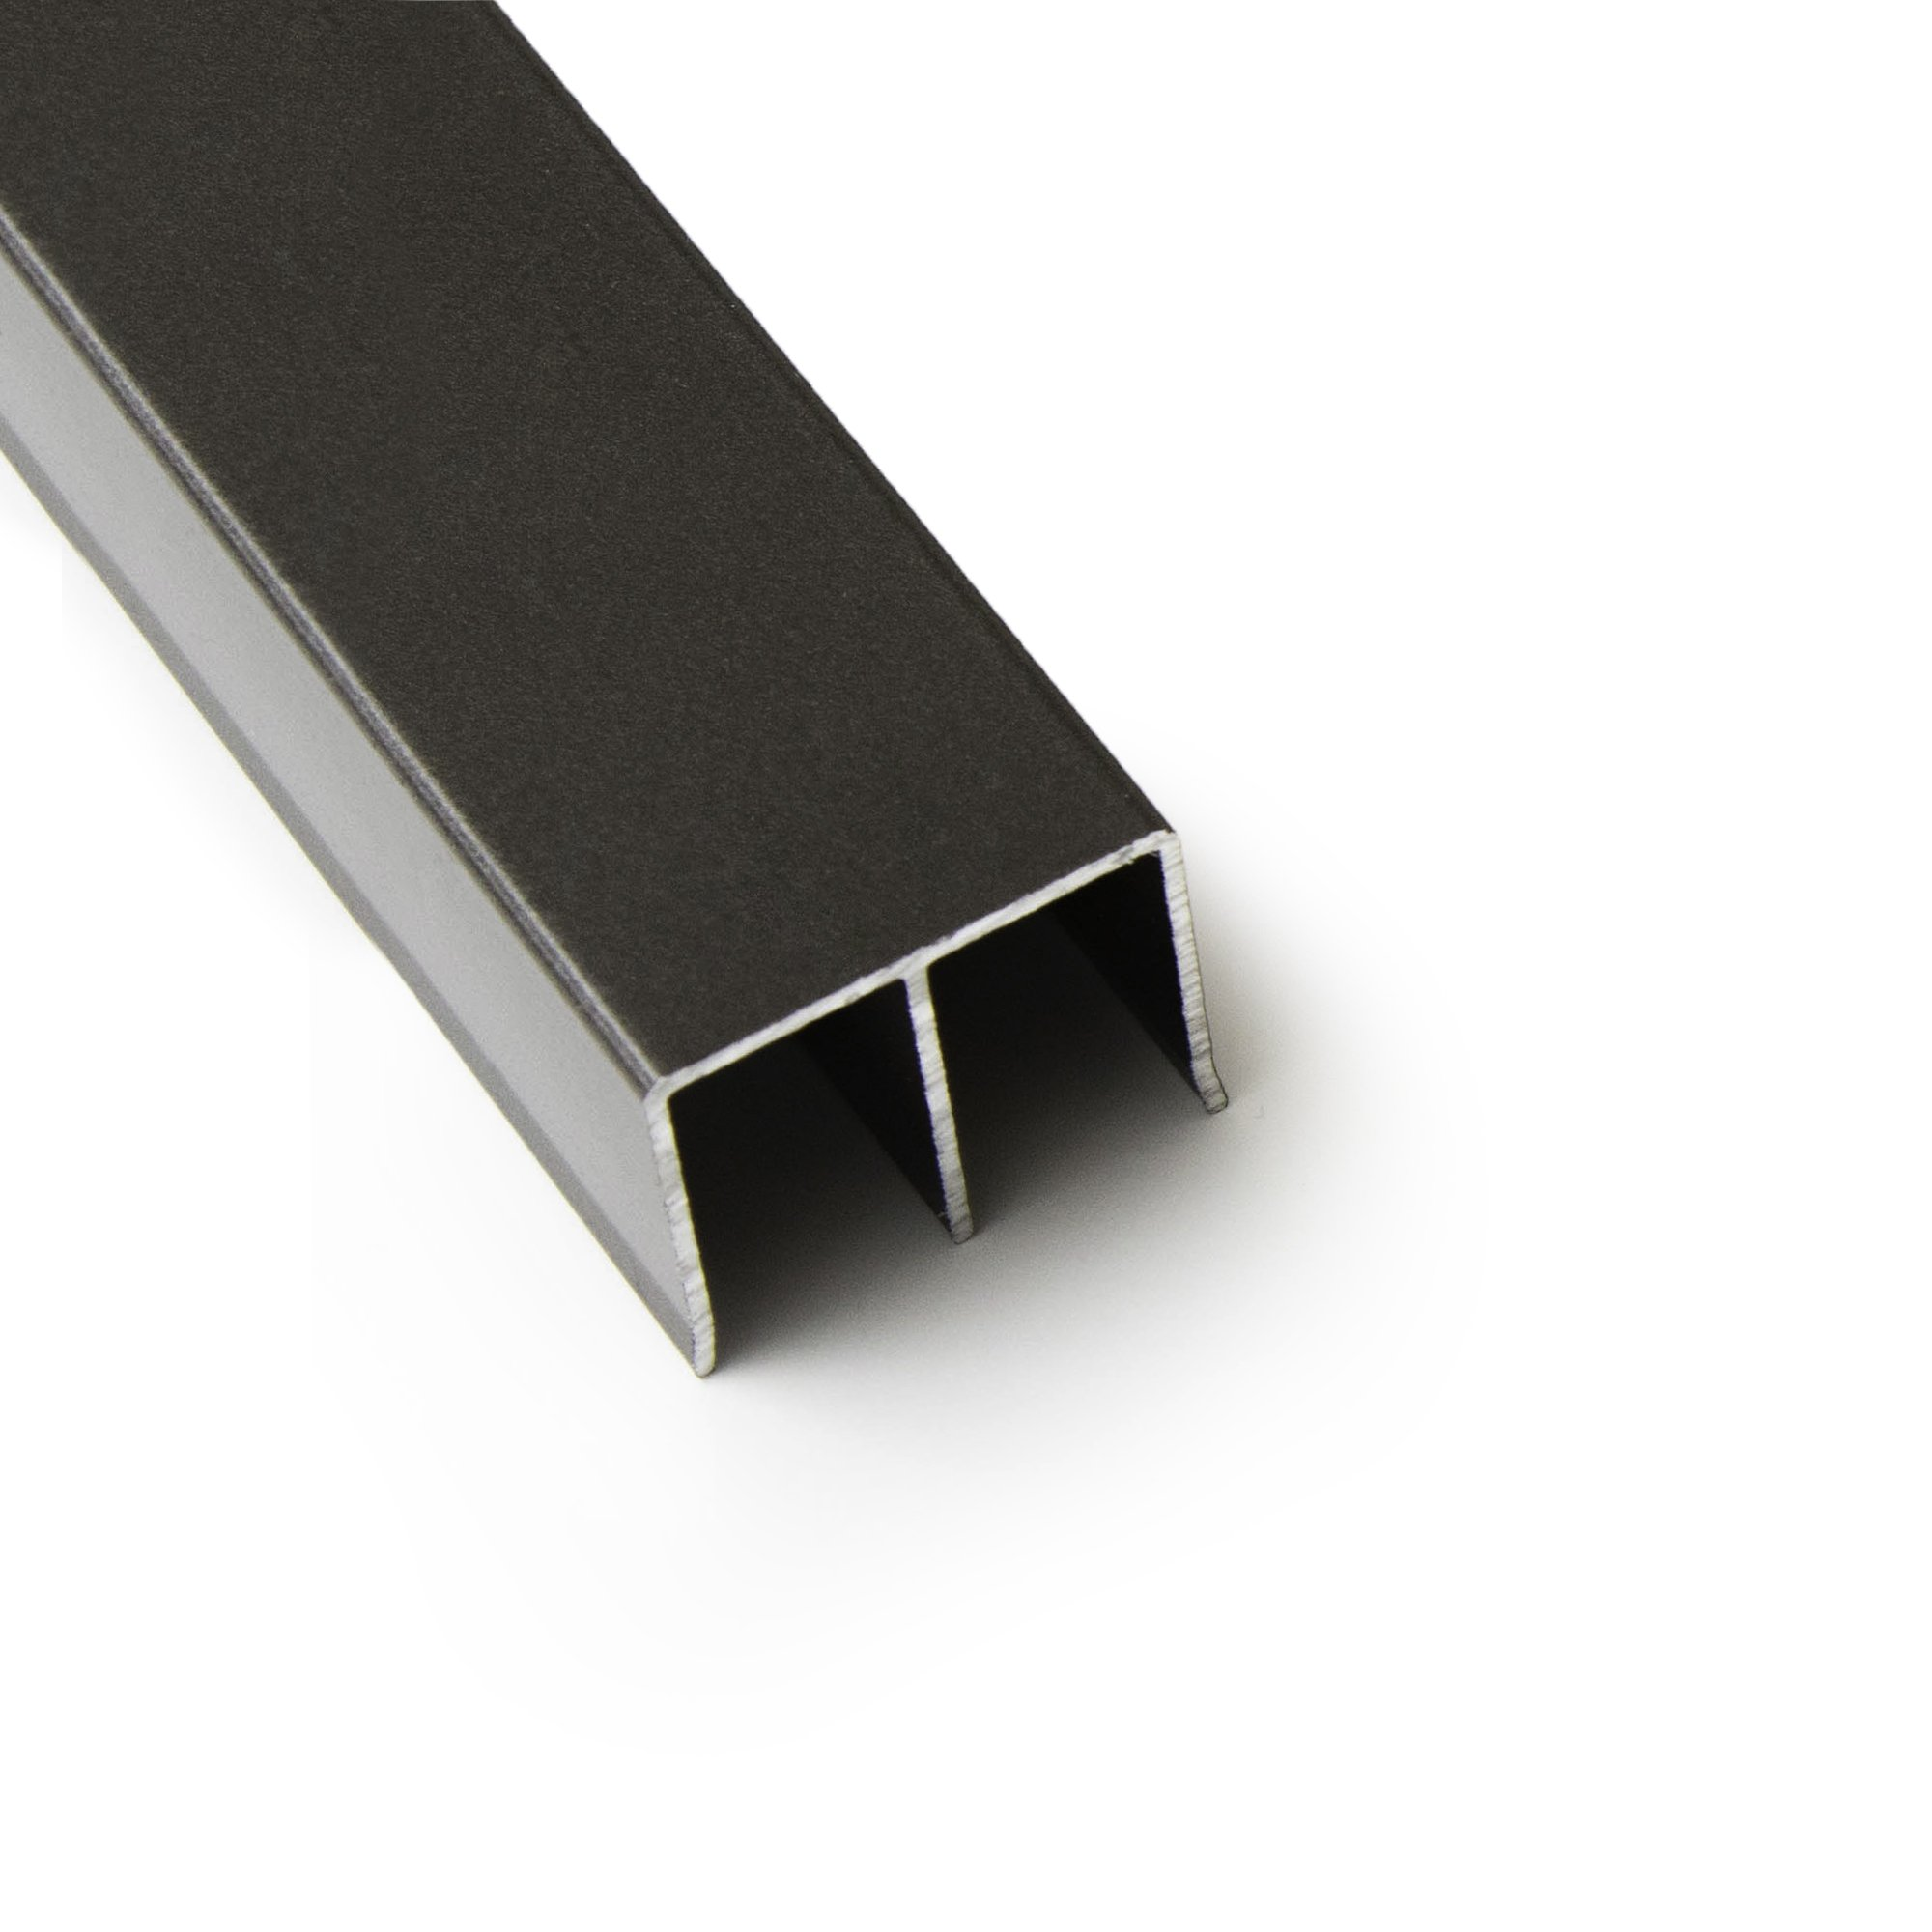 Top Double Track for By-Pass Sliding Screen Doors - 1'' Deep (Bronze)